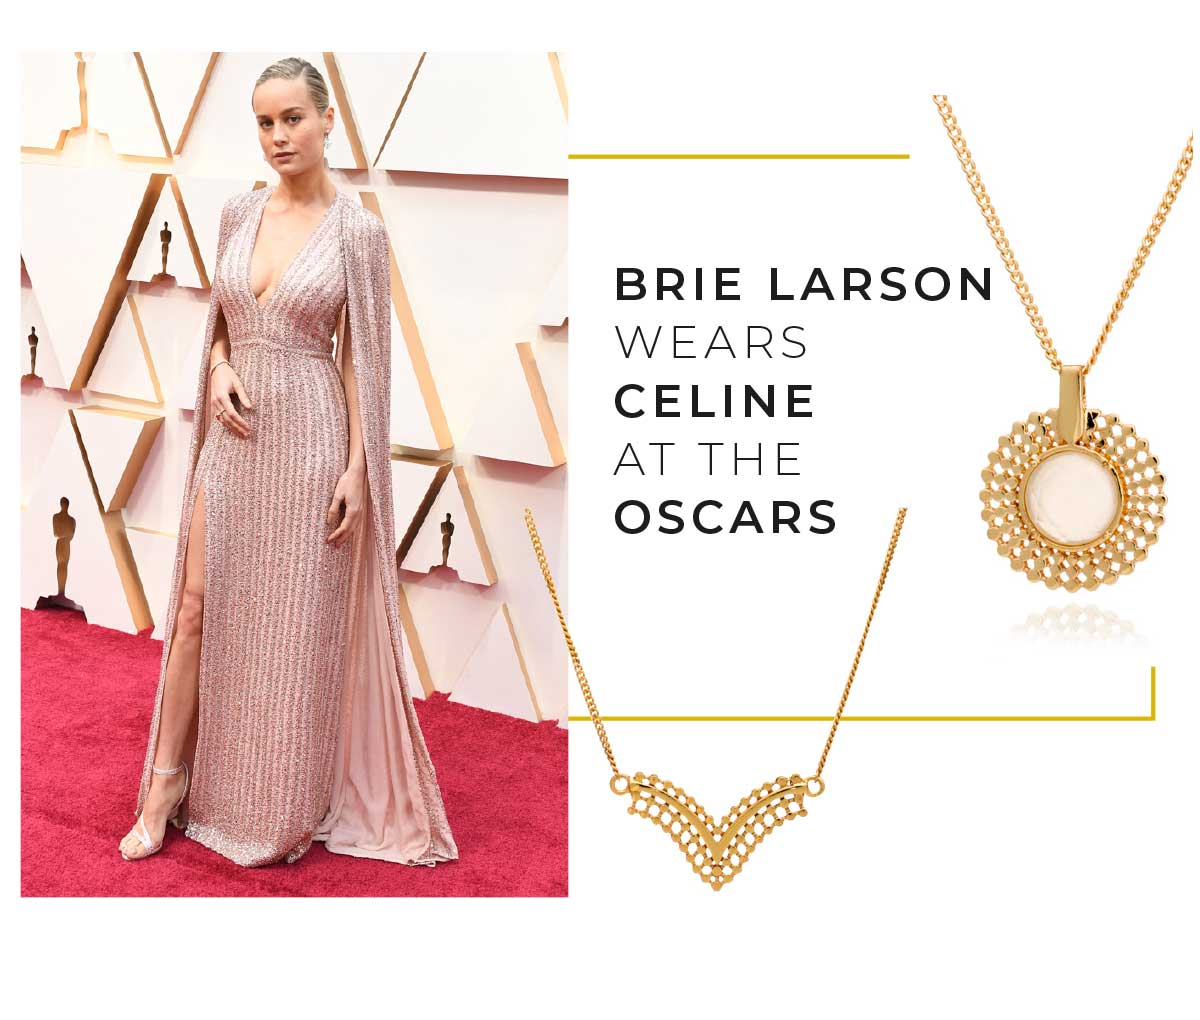 Brie Lawson at the Oscars 2020